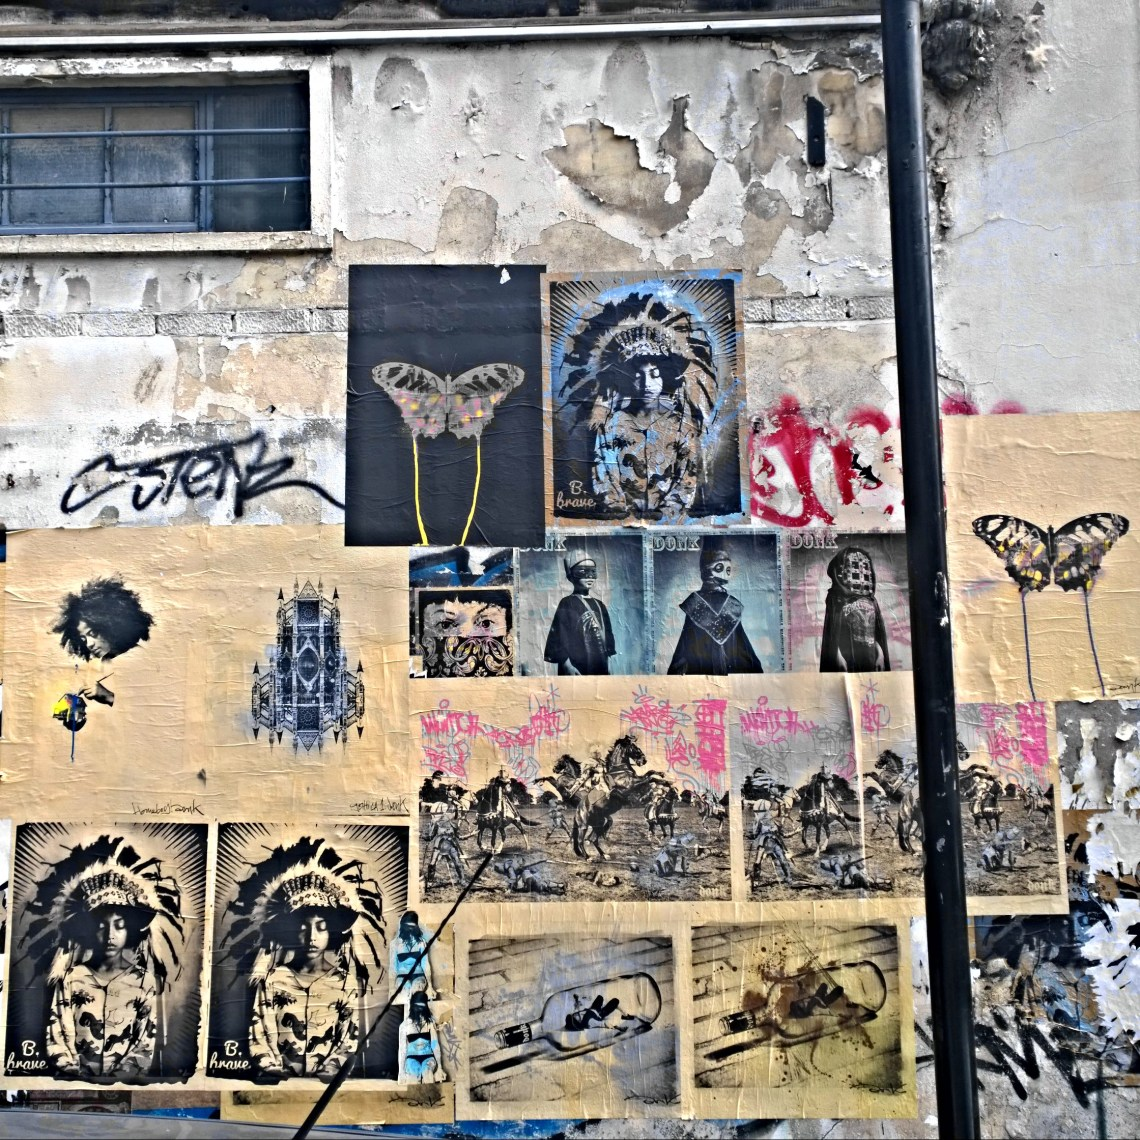 A wall of paste ups by street artist Donk on Toynbee Street